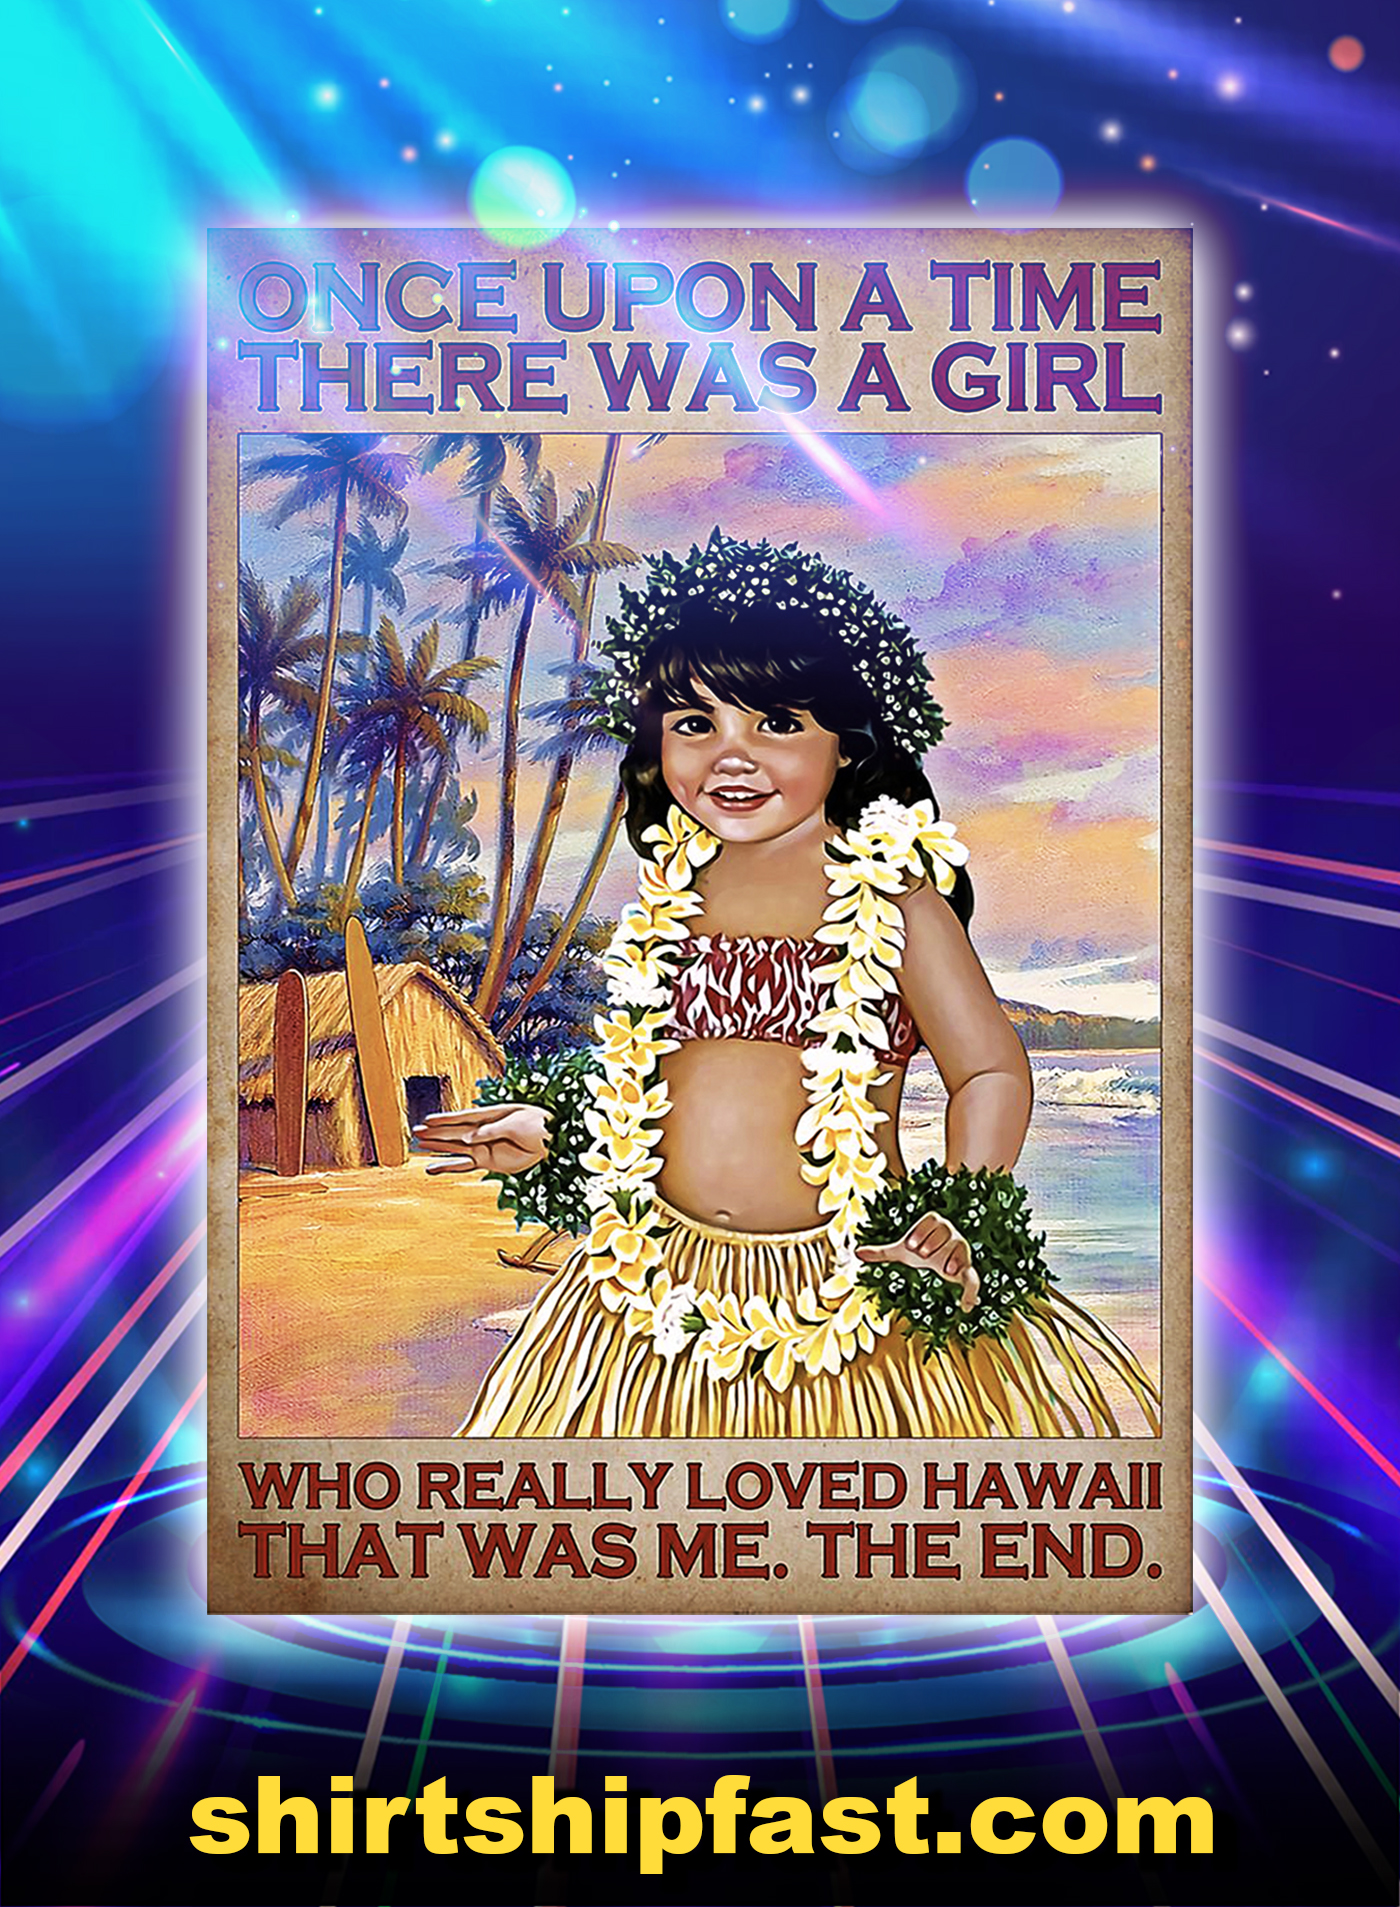 Once upon a time there was a girl who really loved hawaii poster - A1